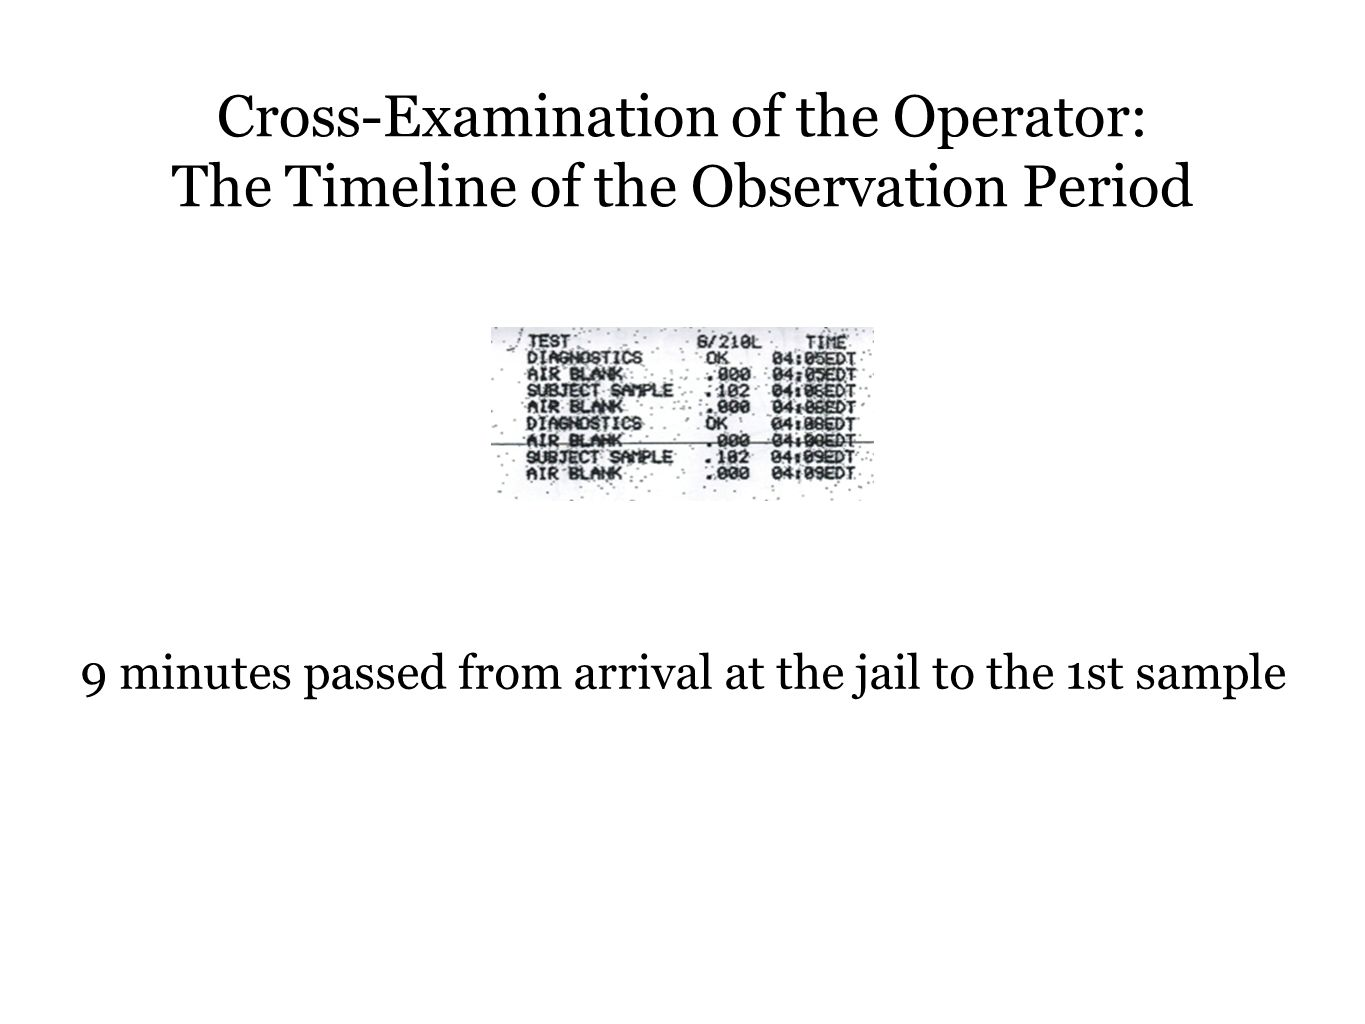 9 minutes passed from arrival at the jail to the 1st sample